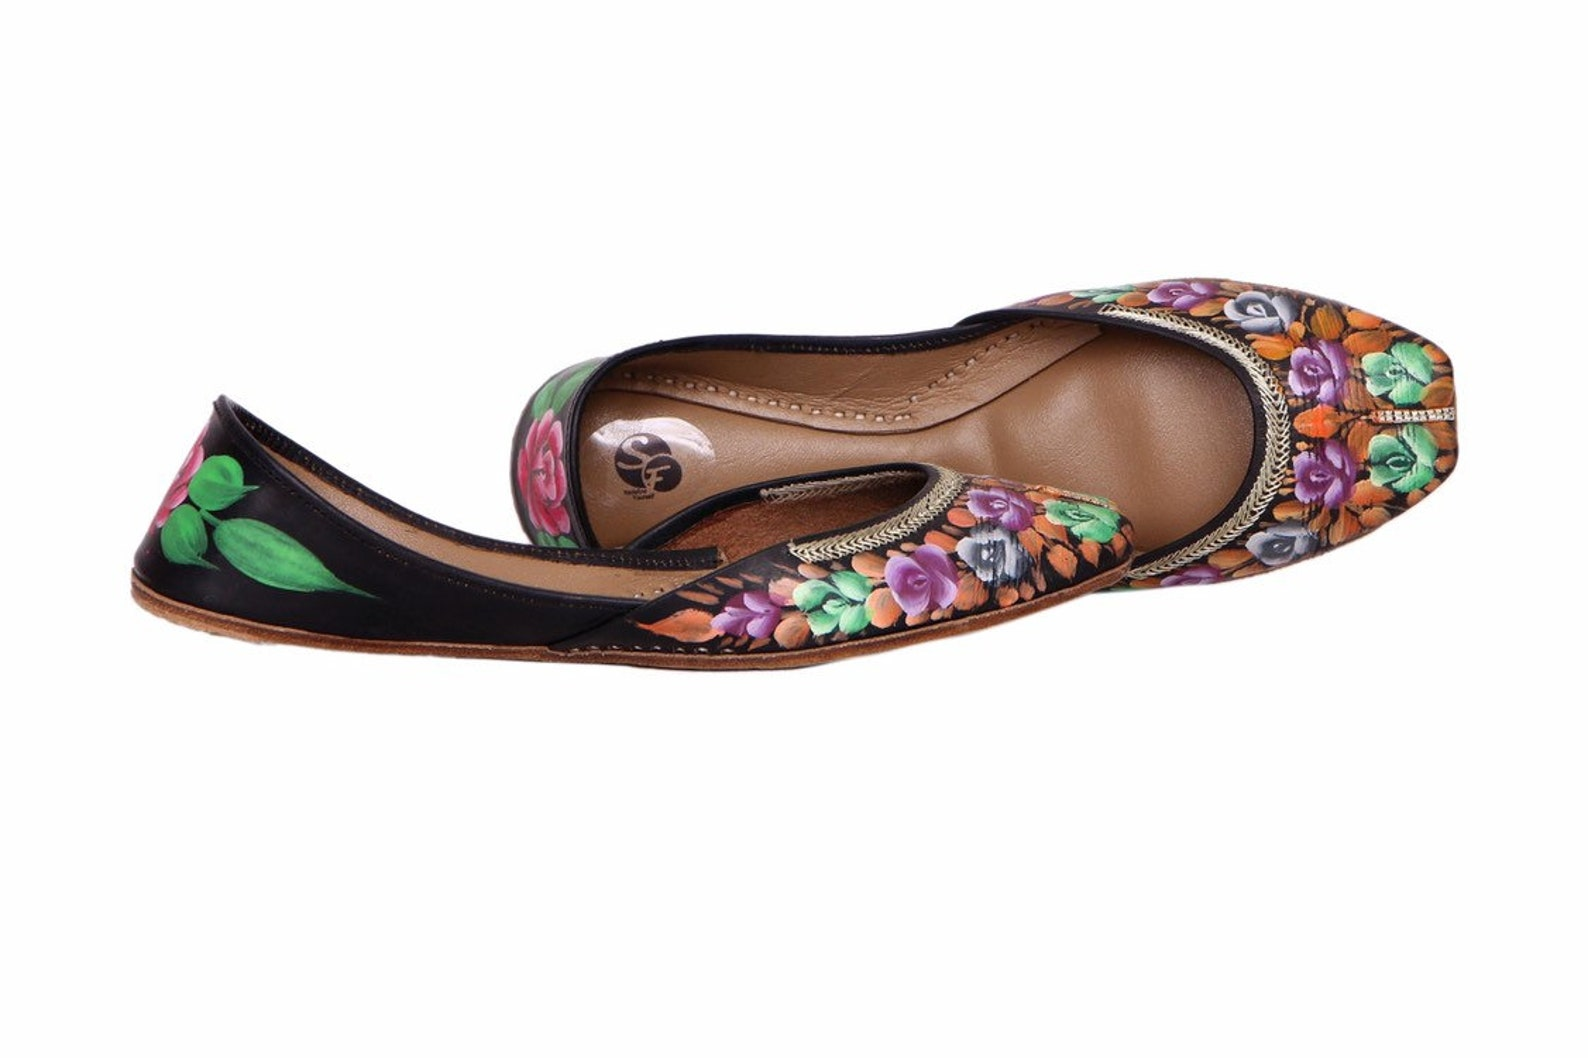 peacock black handpainted women flat shoes ballet flats handpainted khussa juti ethnic painted shoes brooch handpainted mojari i